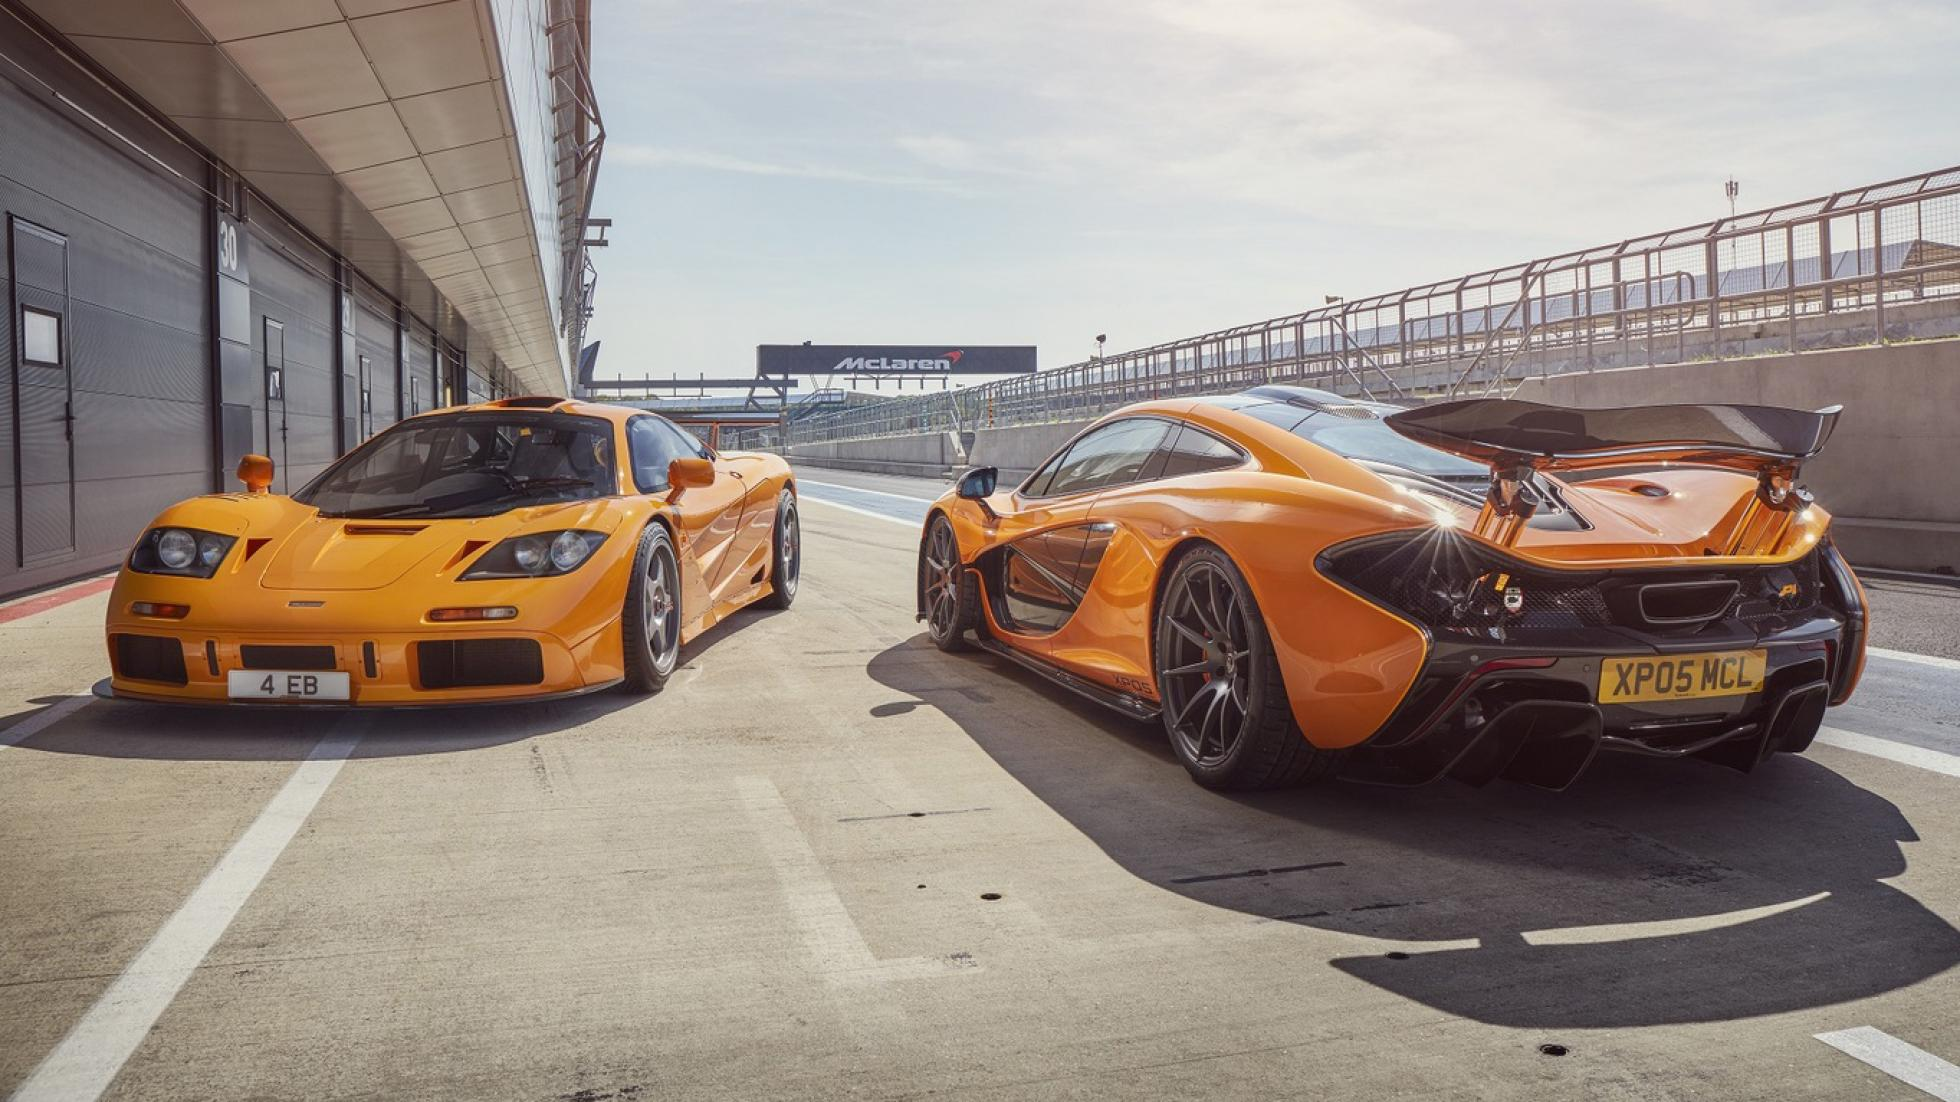 Discussion on this topic: McLaren Confirms Its Fastest Three-Seater Road Car , mclaren-confirms-its-fastest-three-seater-road-car/